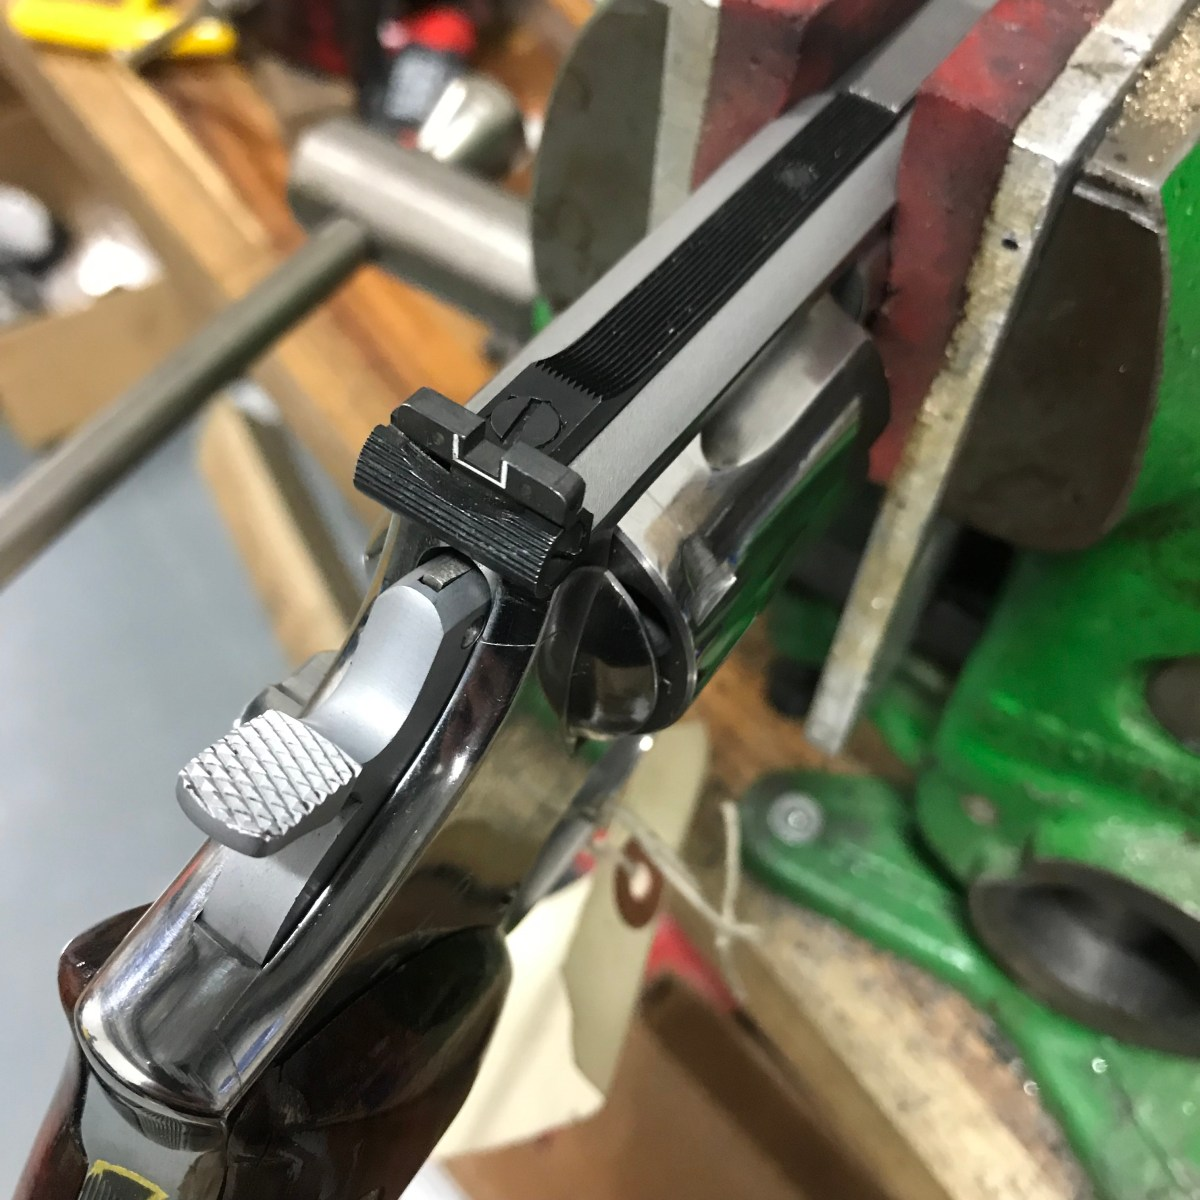 Changing the rear sight blade on a Smith and Wesson revolver